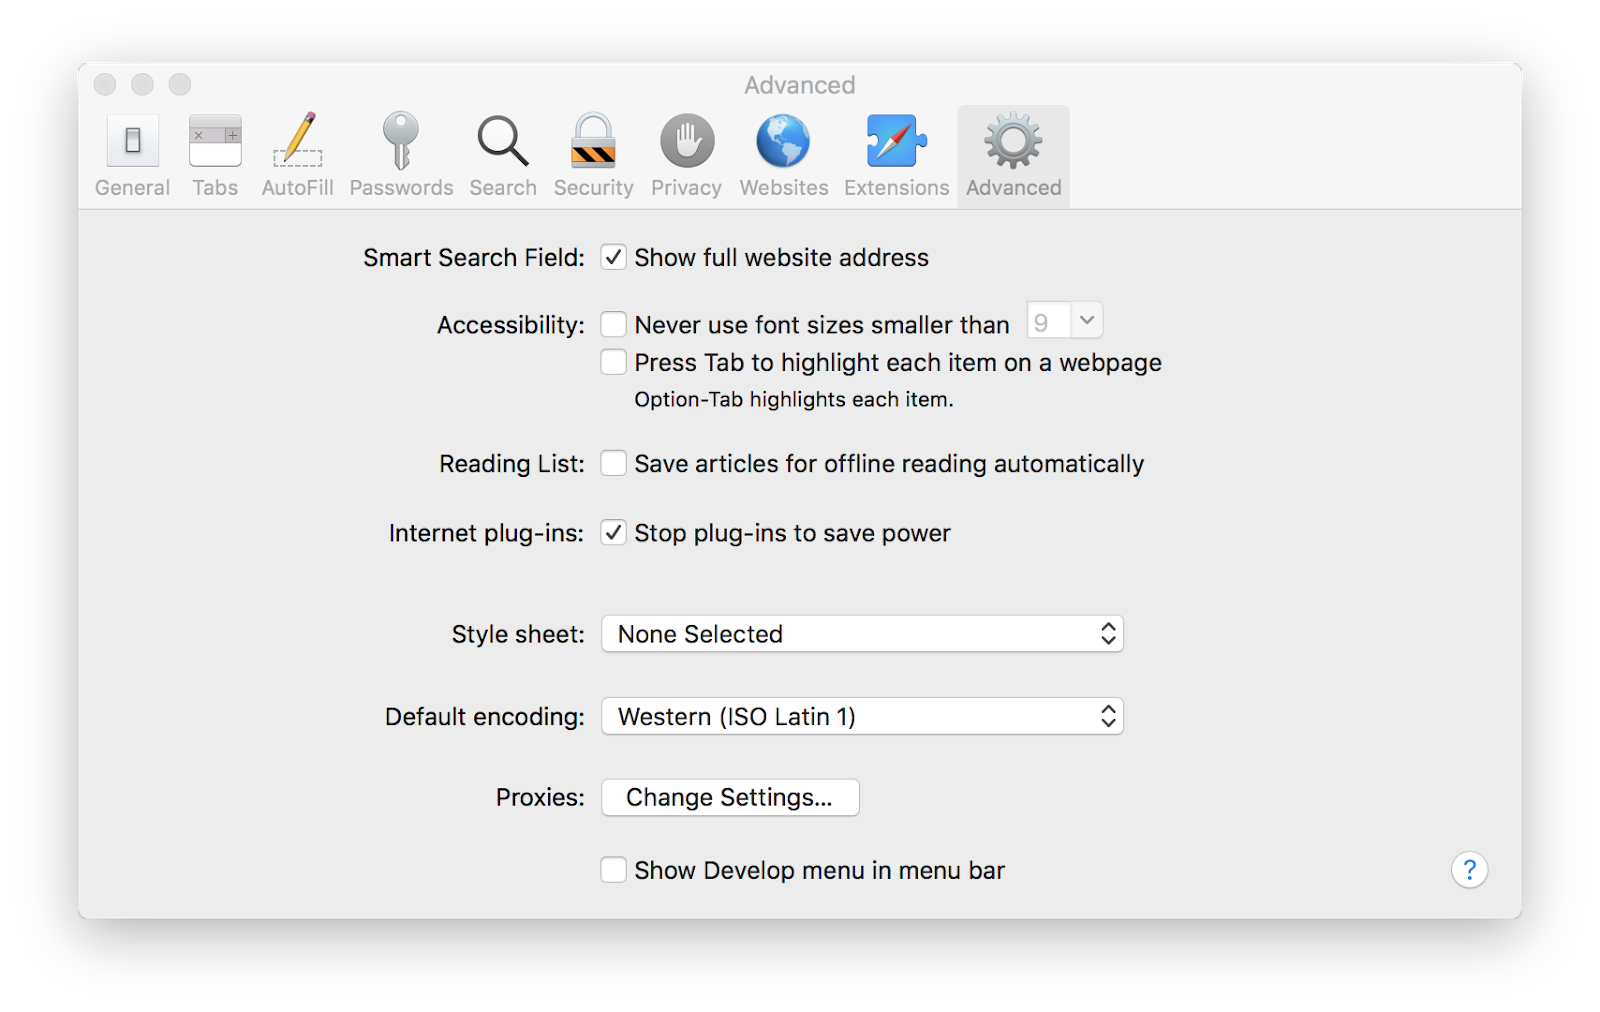 safari advanced settings